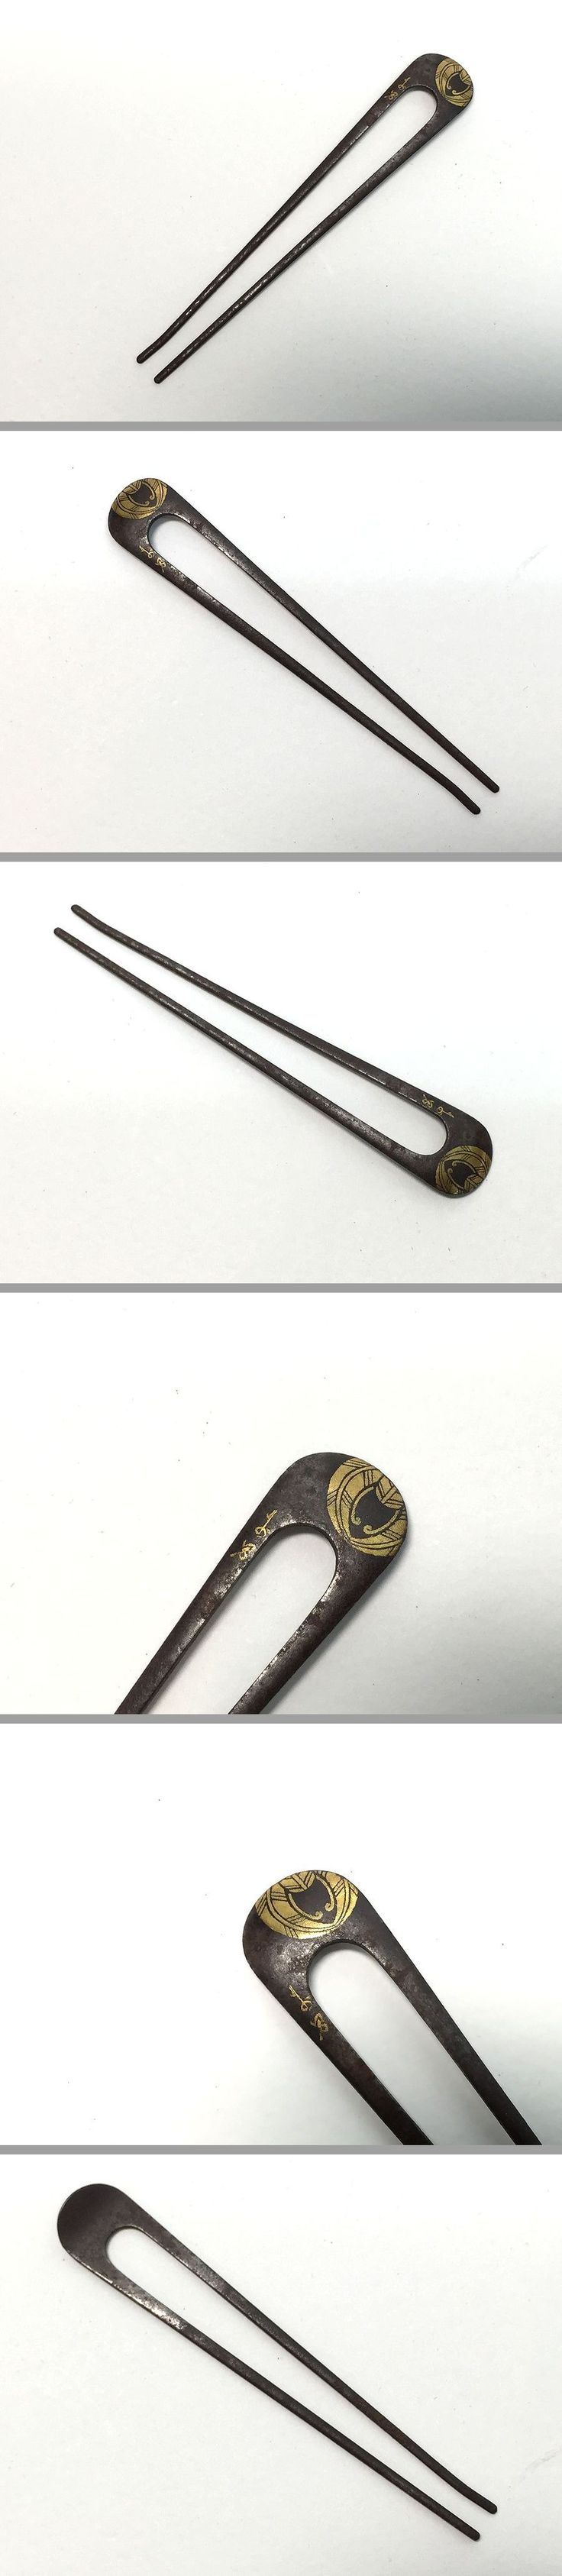 Japanese hair ornaments - Iron Hairpin Inlaid With Gold Signature Of Artist And Kamon Of Japanese Family Japanese Hairhair Ornamentshairpinhair